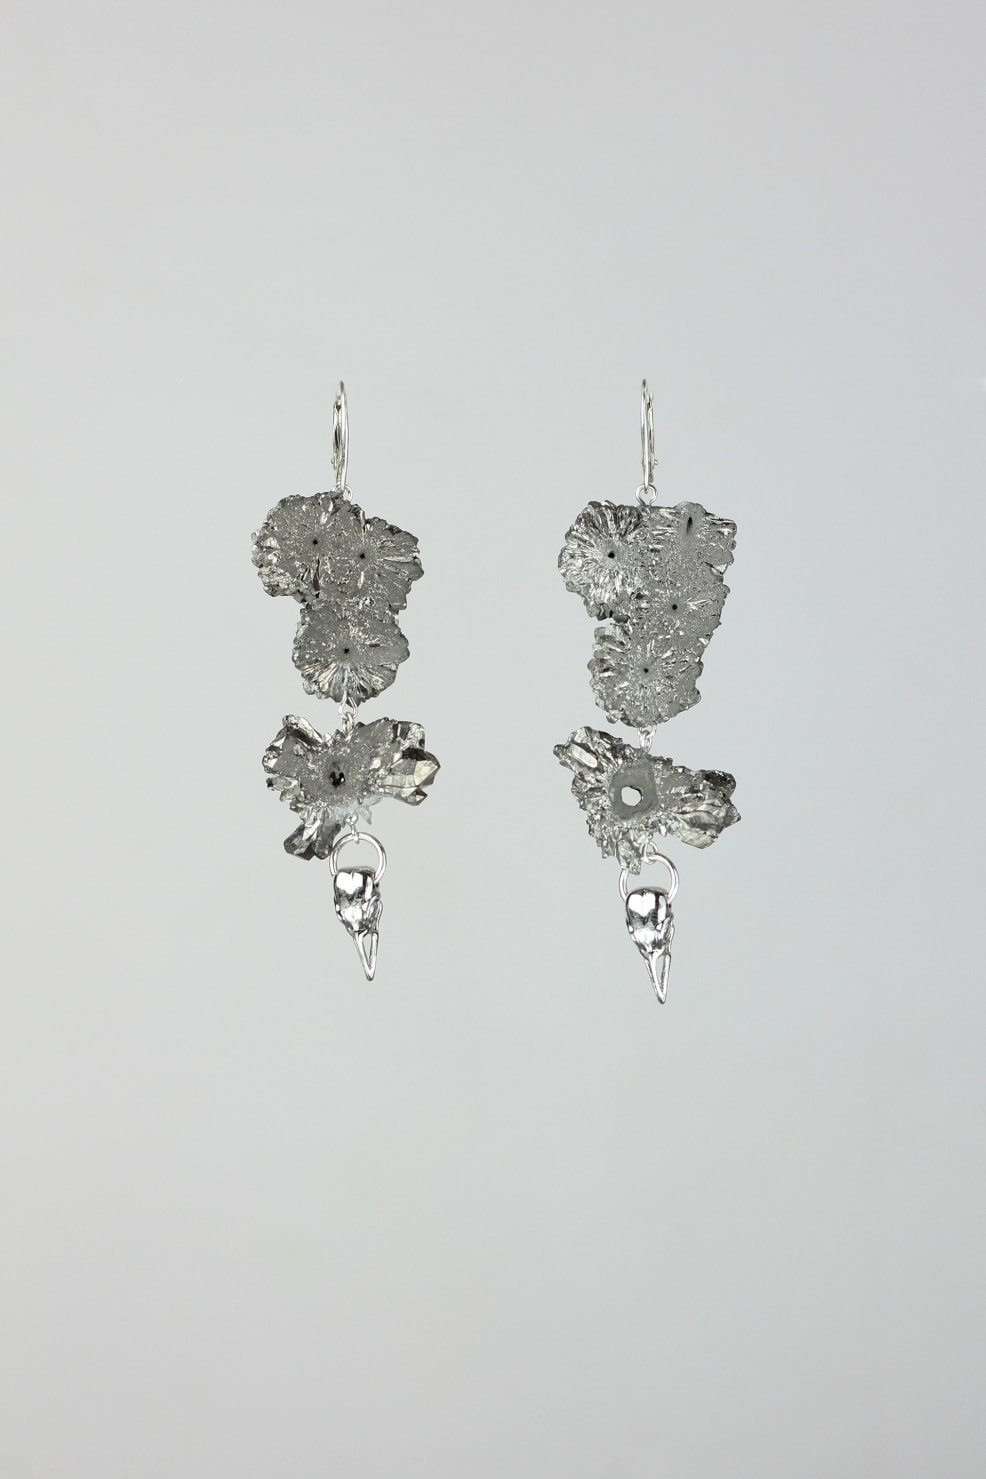 Chrome coated quartz crystal slice earrings